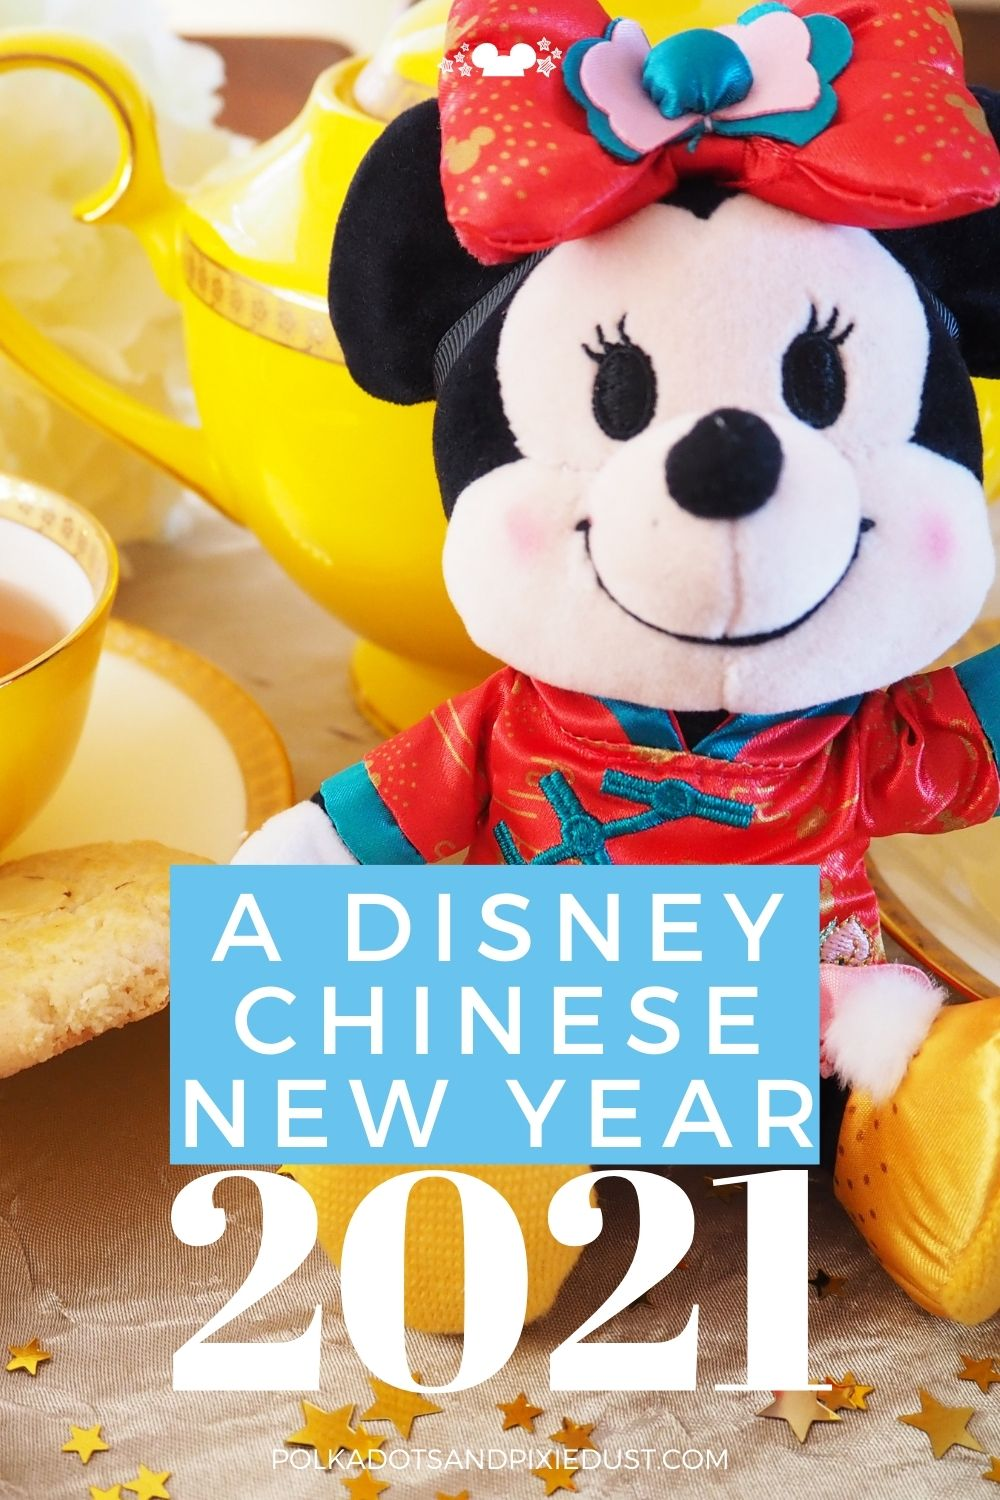 Celebrate a Disney Chinese New Year at home with almond cookies, activities, and a Disney Chinese Zodiac from Shanghai Disneyland. #polkadotpixies #disneyparties